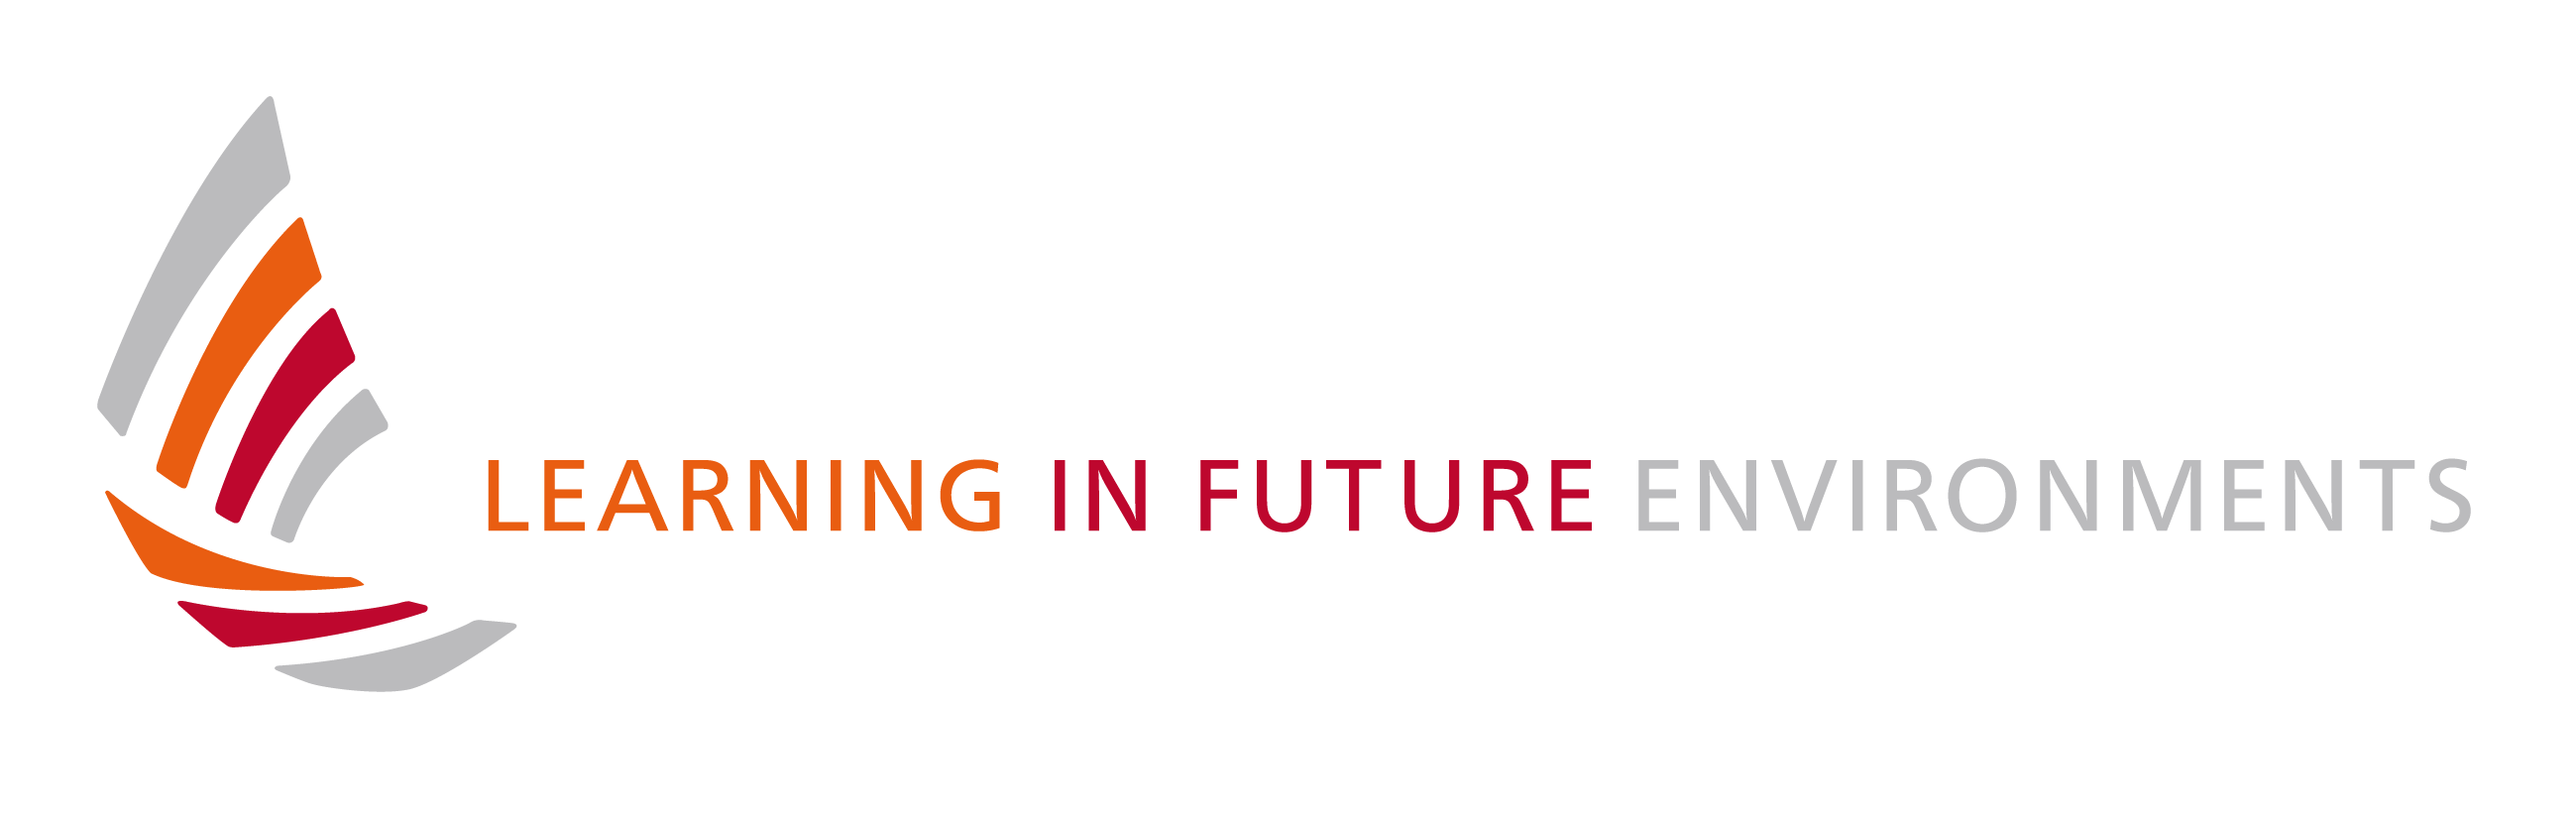 Learning in Future Environments